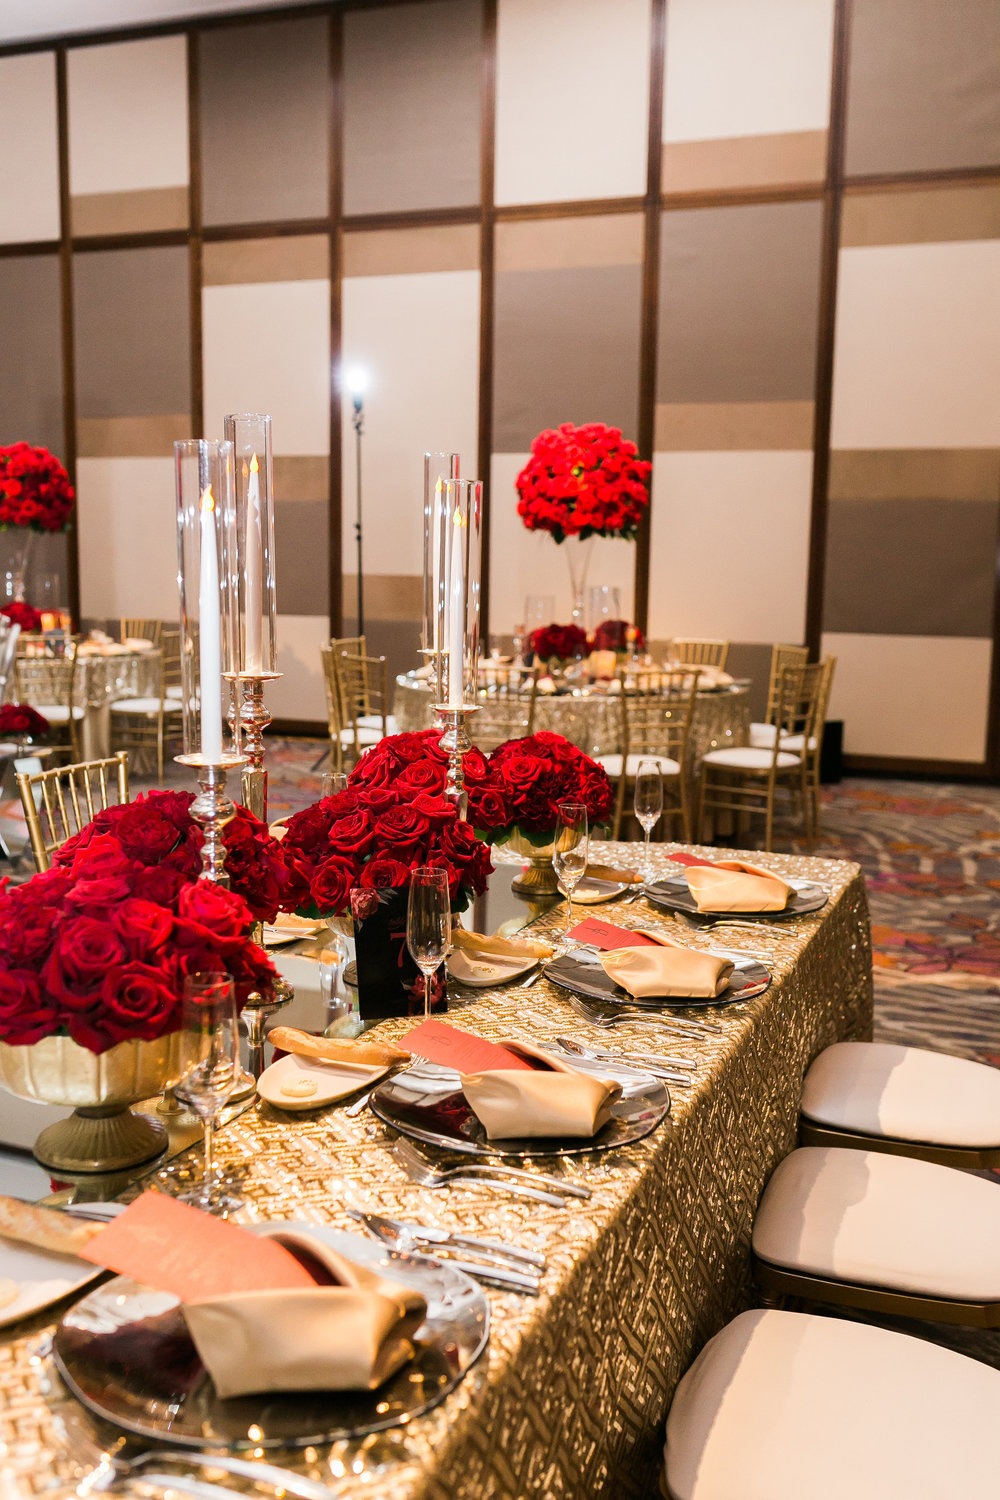 Long table with candelabras and gold linens, topped with red roses.  Las Vegas Wedding Planner Andrea Eppolito shares this multicultural wedding.  Photo by J.Anne Photography. Wedding at Mandarin Oriental Las Vegas.  Decor by DBD Vegas.